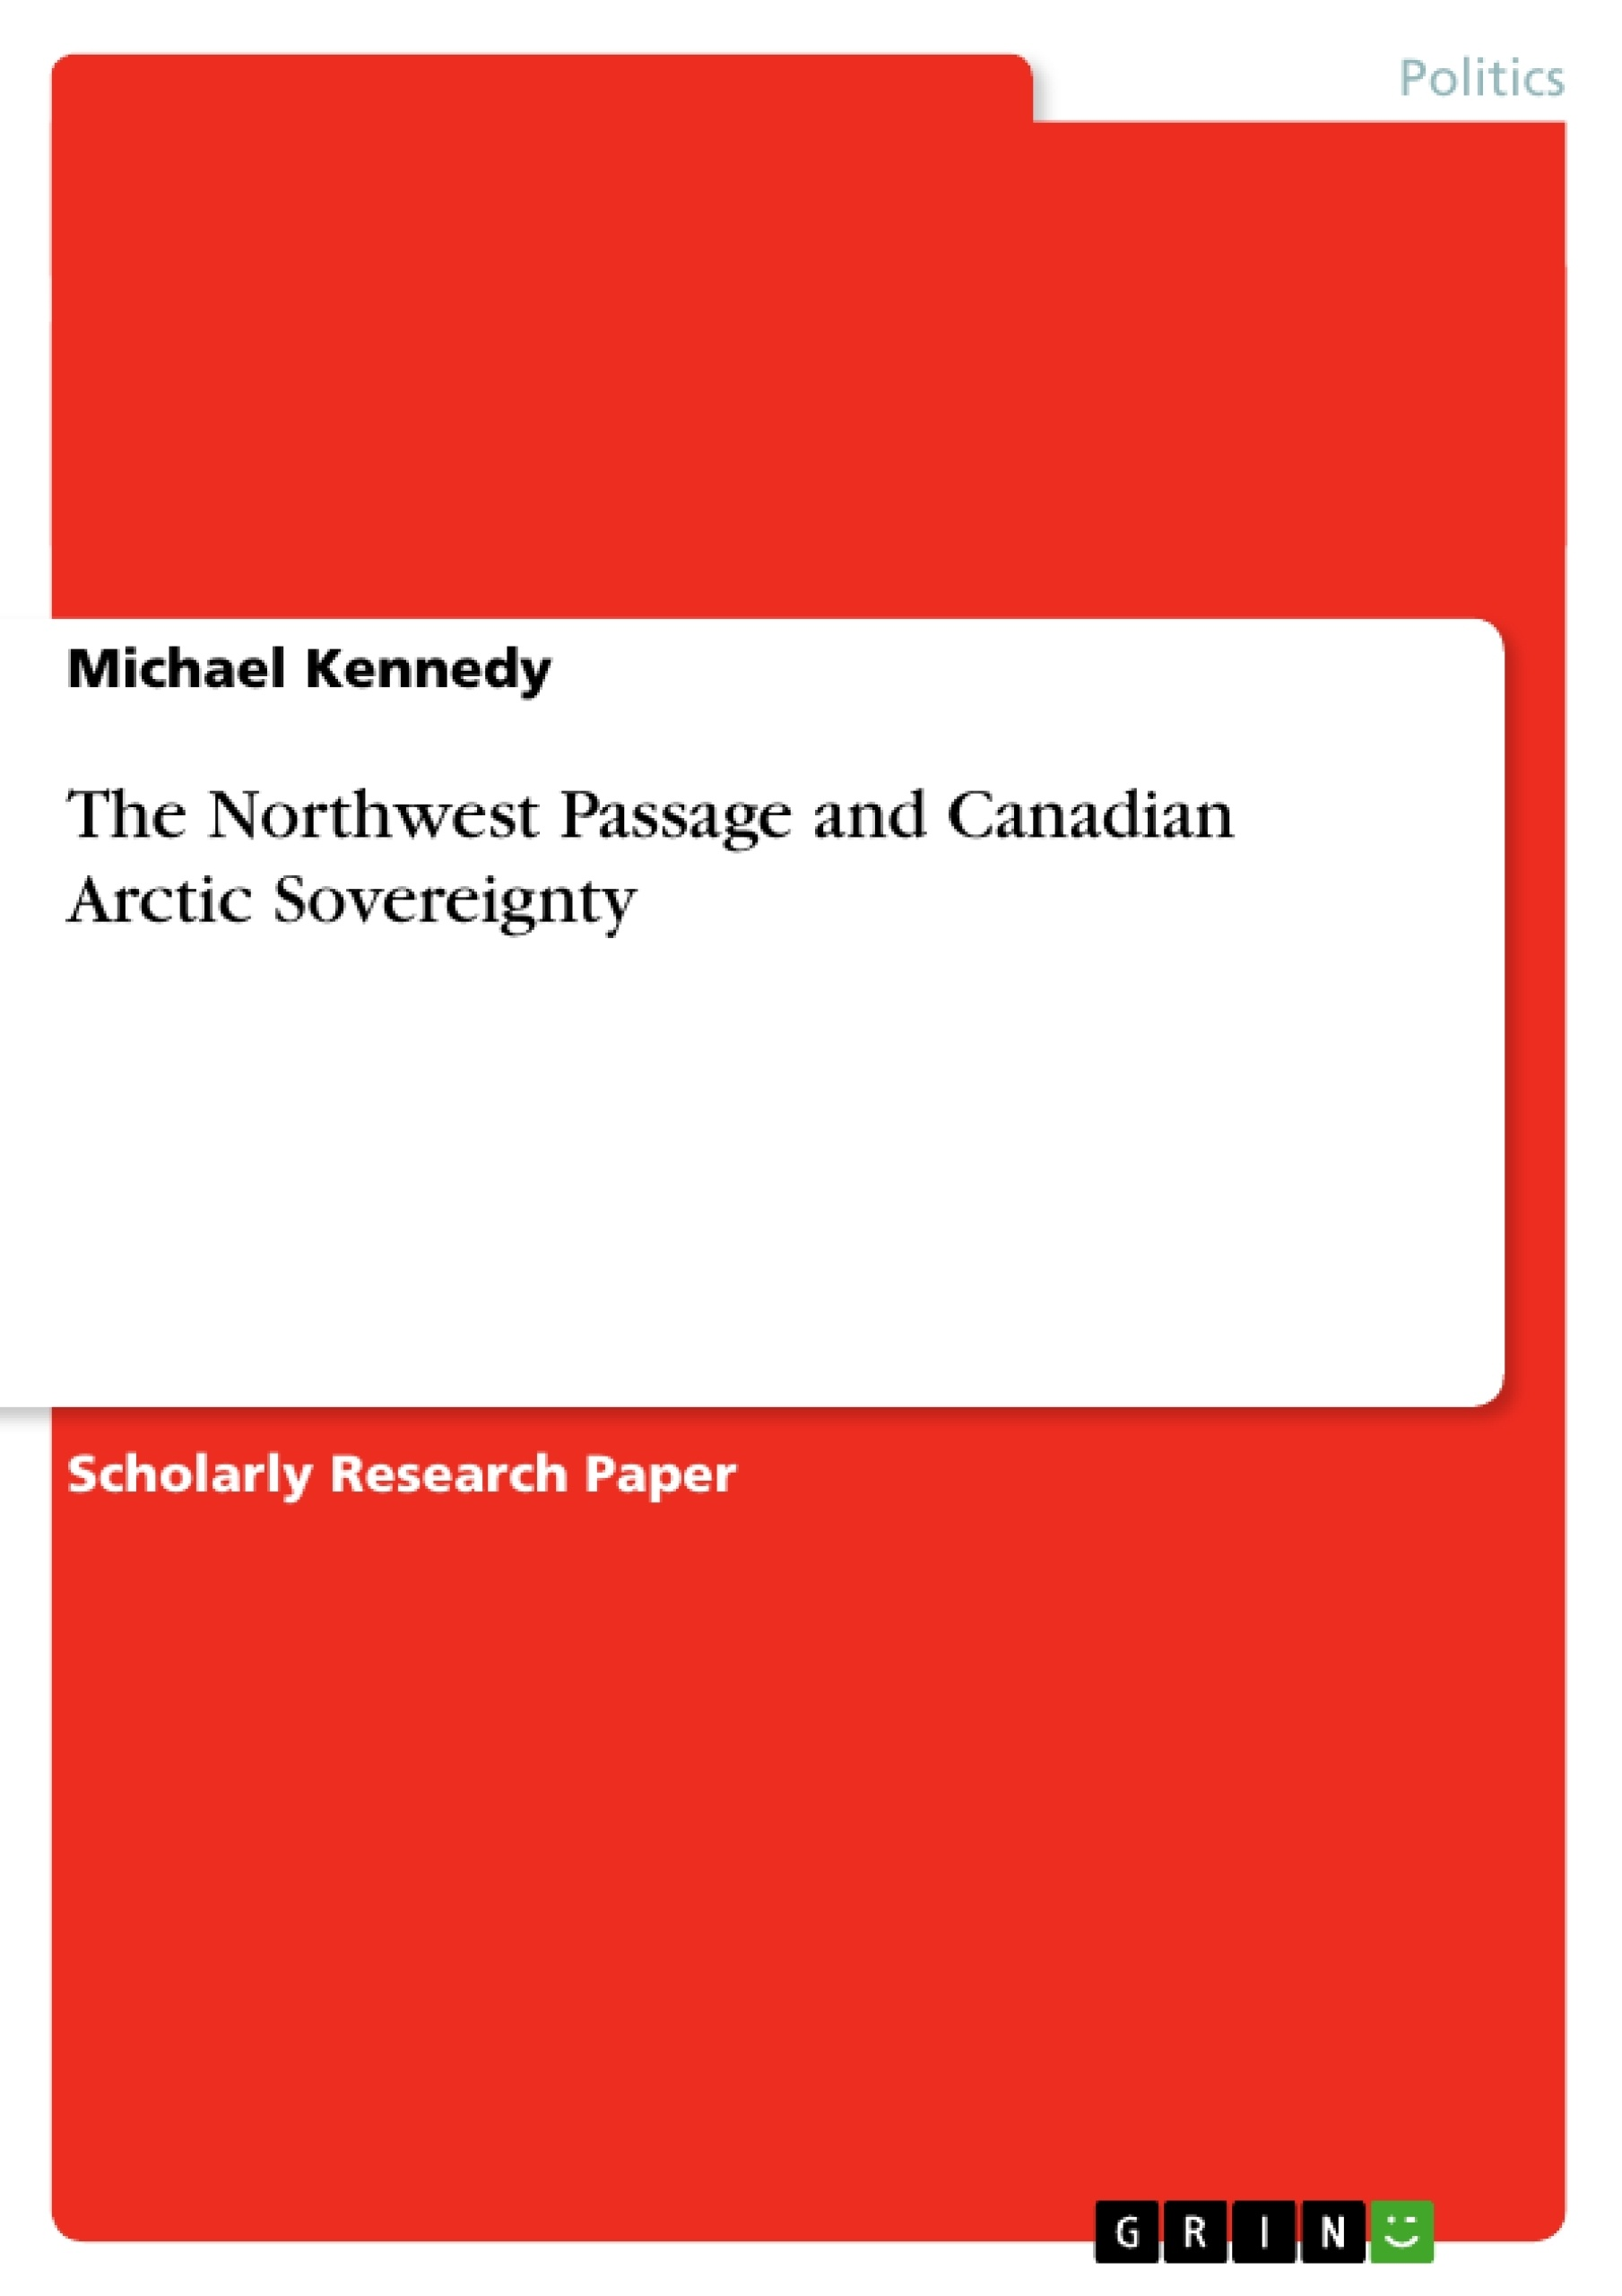 Title: The Northwest Passage and Canadian Arctic Sovereignty